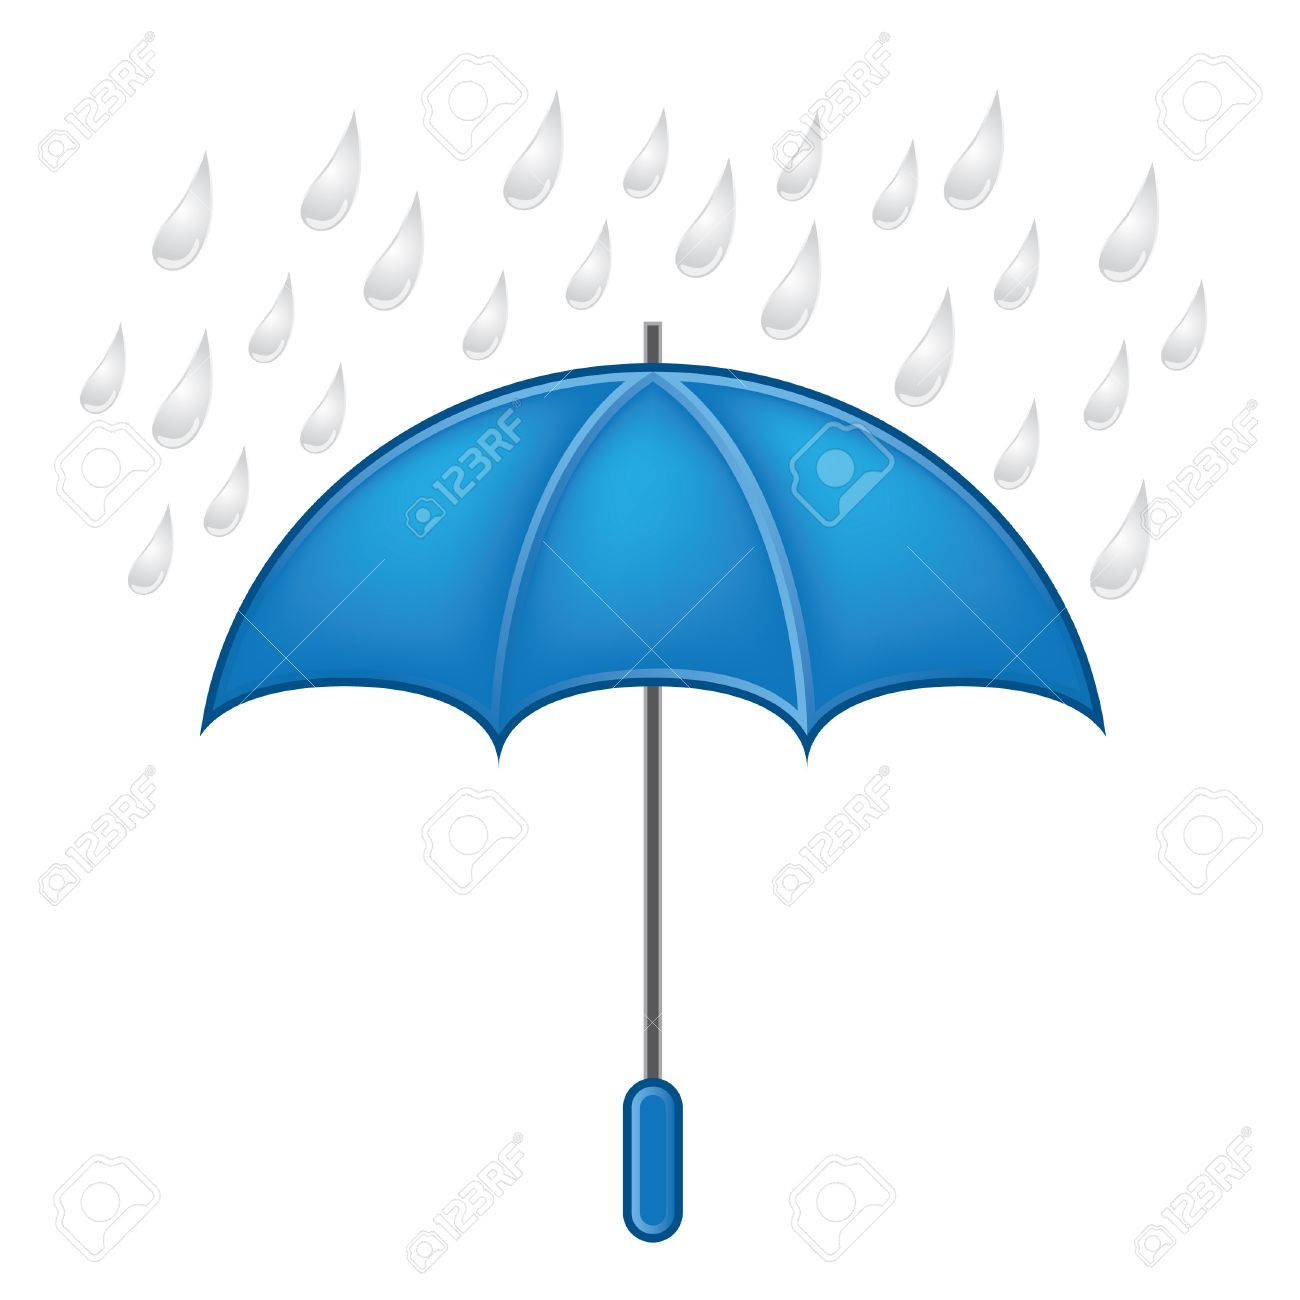 Weather Symbols Vector Set Umbrella With Rain Royalty Free Cliparts